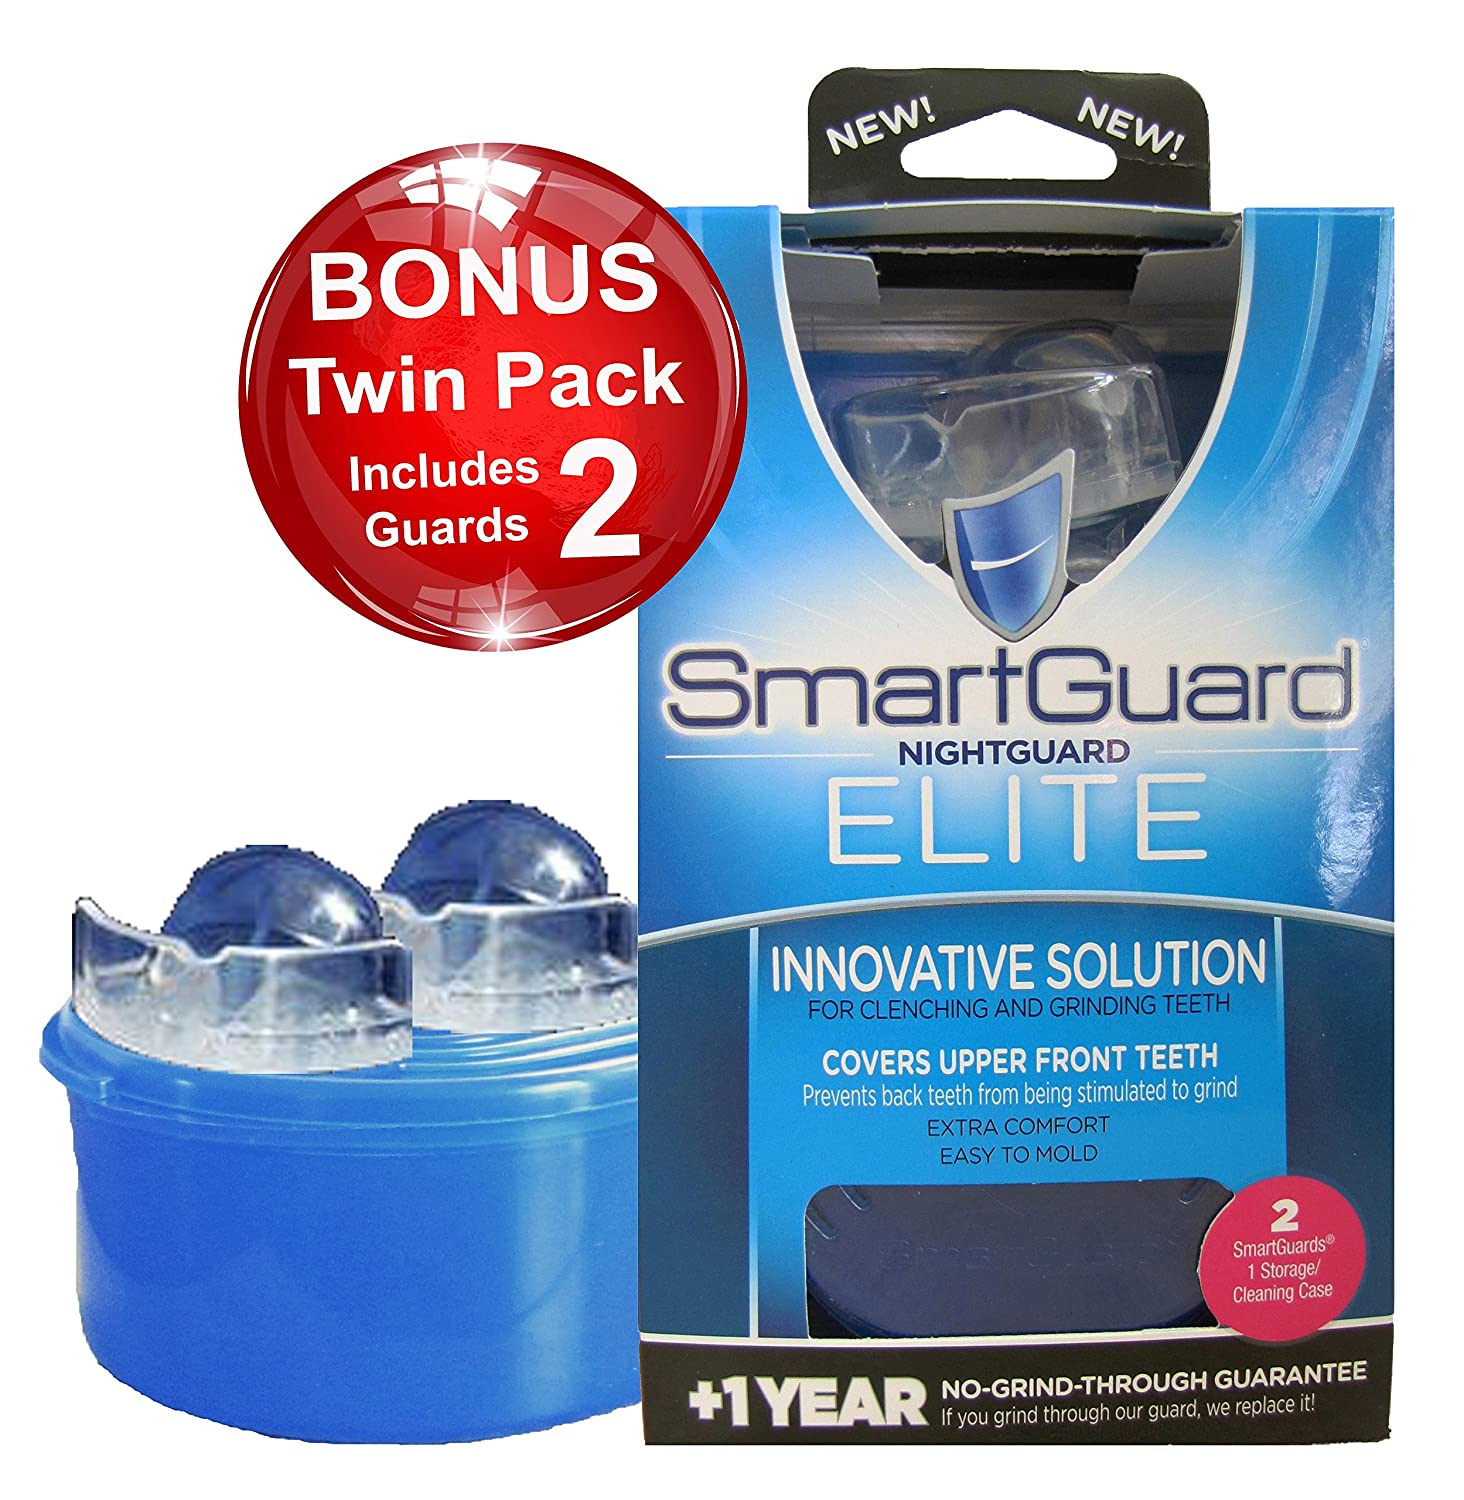 SmartGuard Elite Night Guard (2 Guards & 1 Cleaning Case) for Clenching & Grinding Teeth (Bruxism), Dentist's Choice, Covers Upper Front Teeth, Personal Comfort Fit Dentist's Choice SmartGuard Inc. Dentist's Choice 1